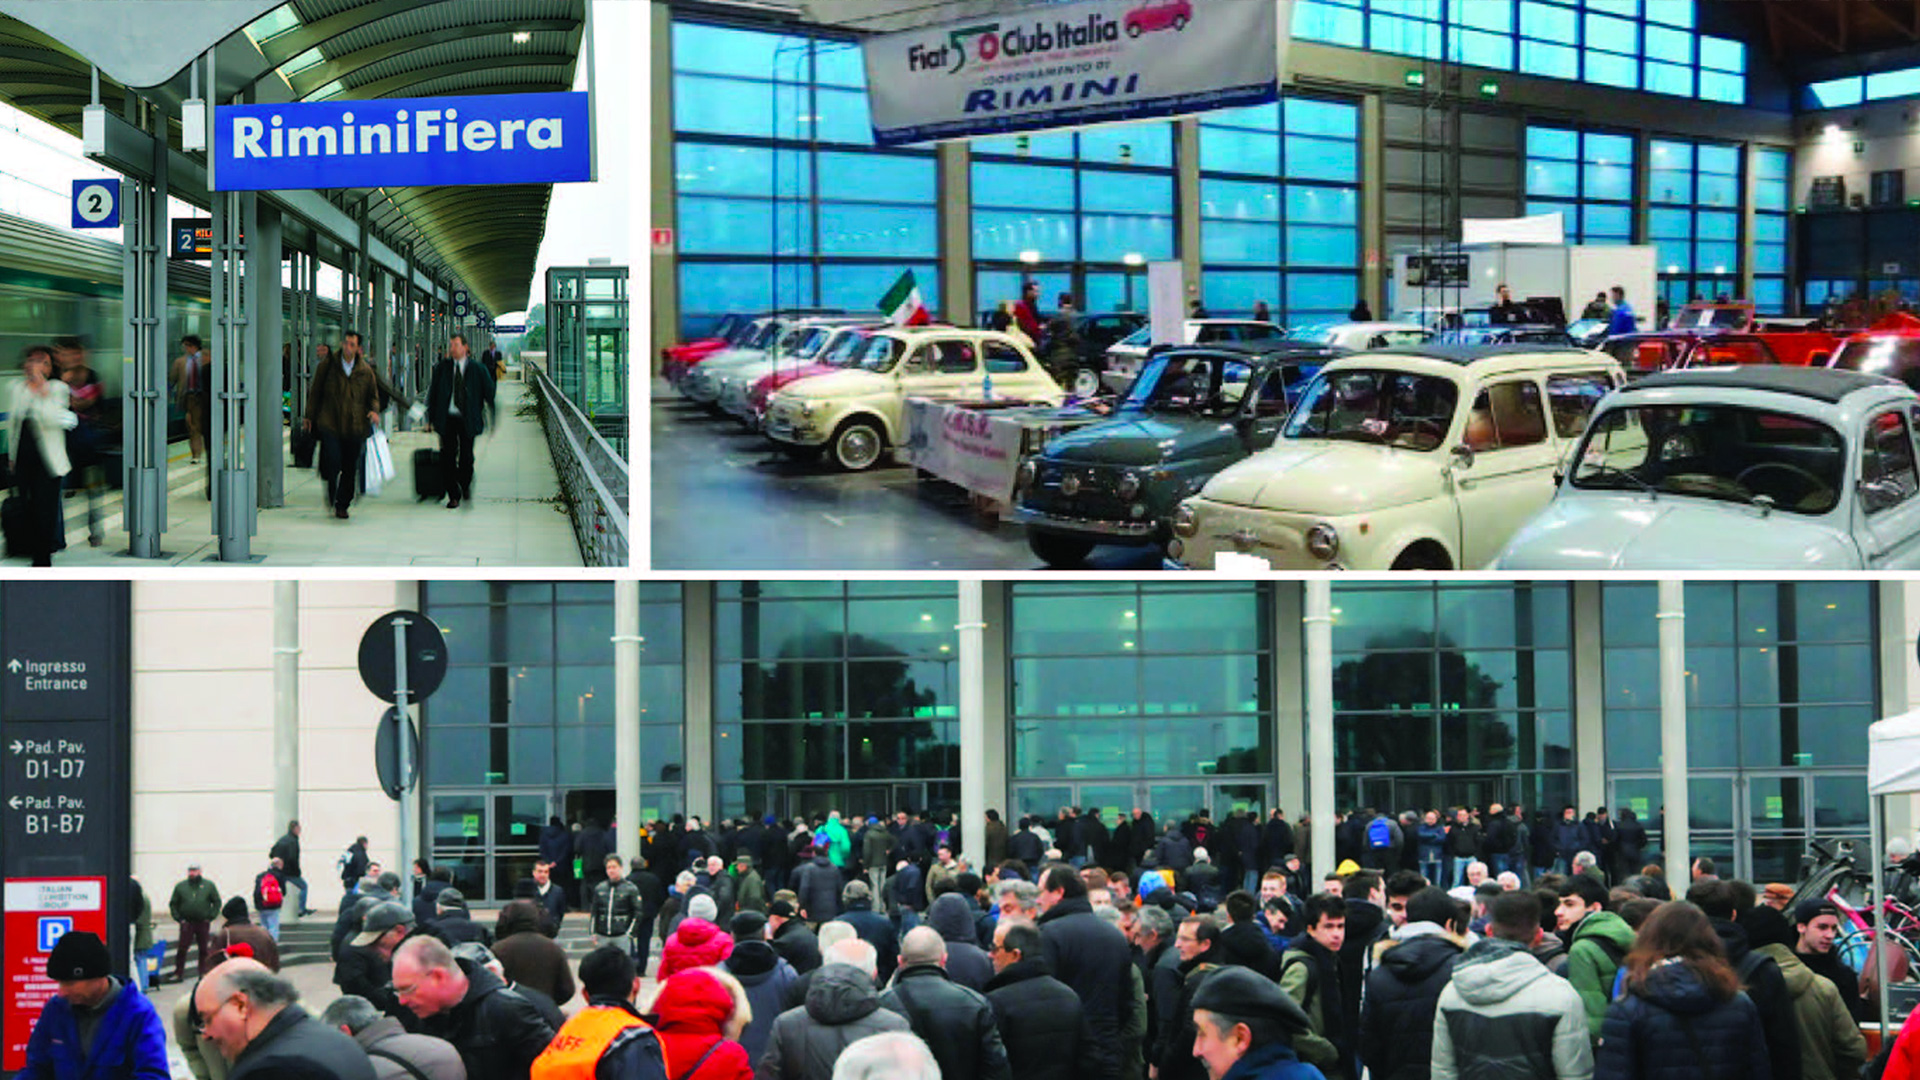 48° Exhibition of Vintage Cars and Bikes